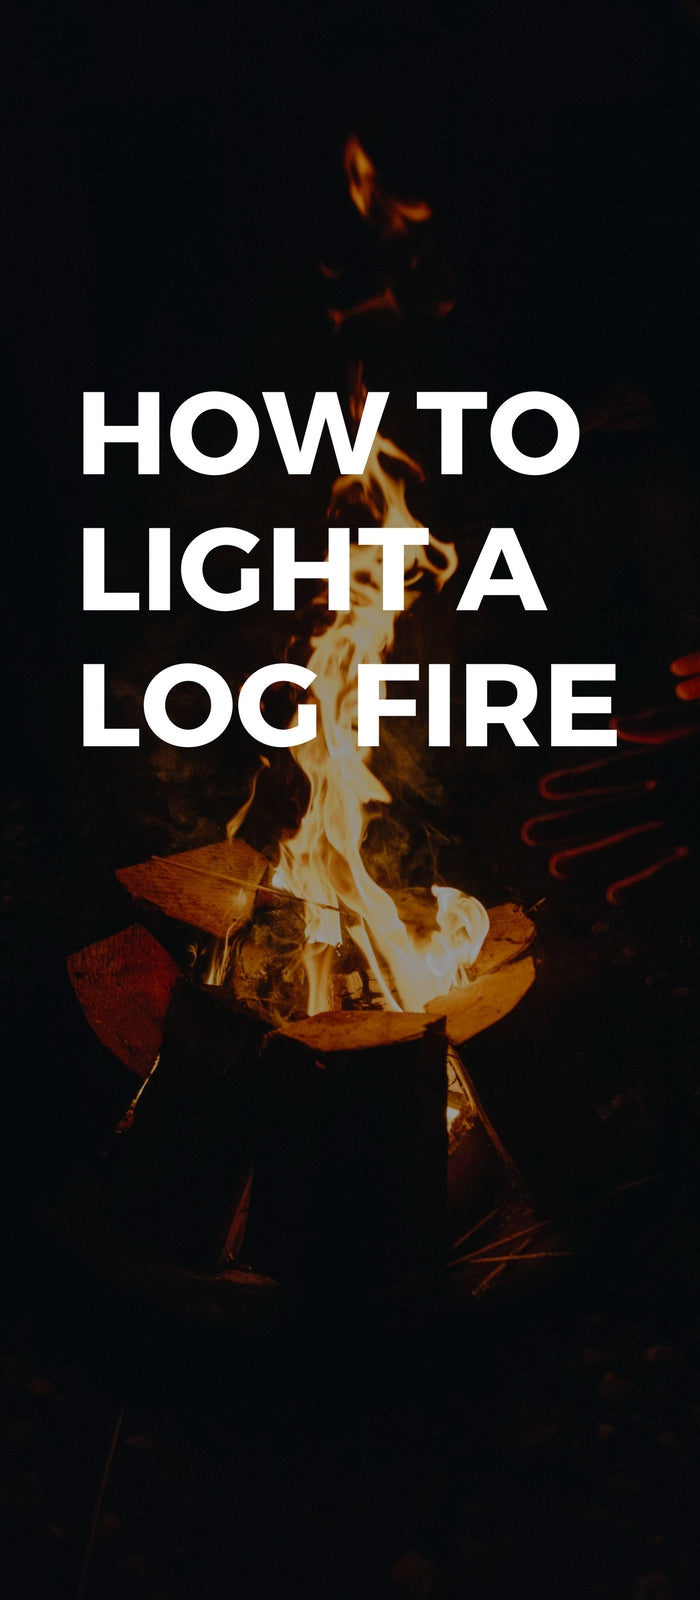 How to Light a Log Fire